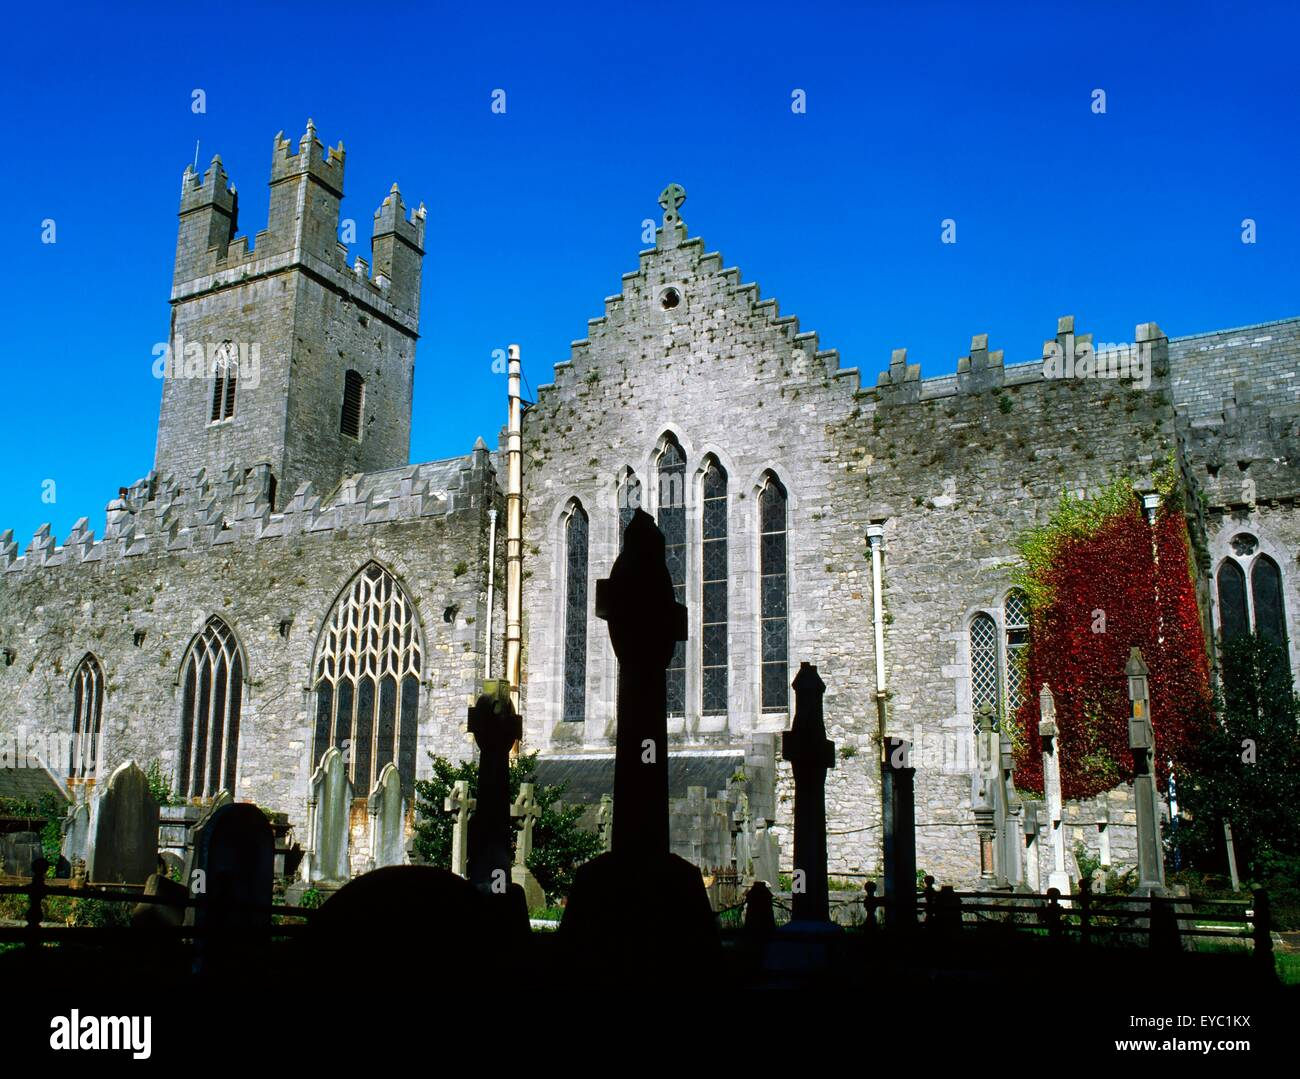 St Mary's Cathedral, Co Limerick, Ireland - Stock Image